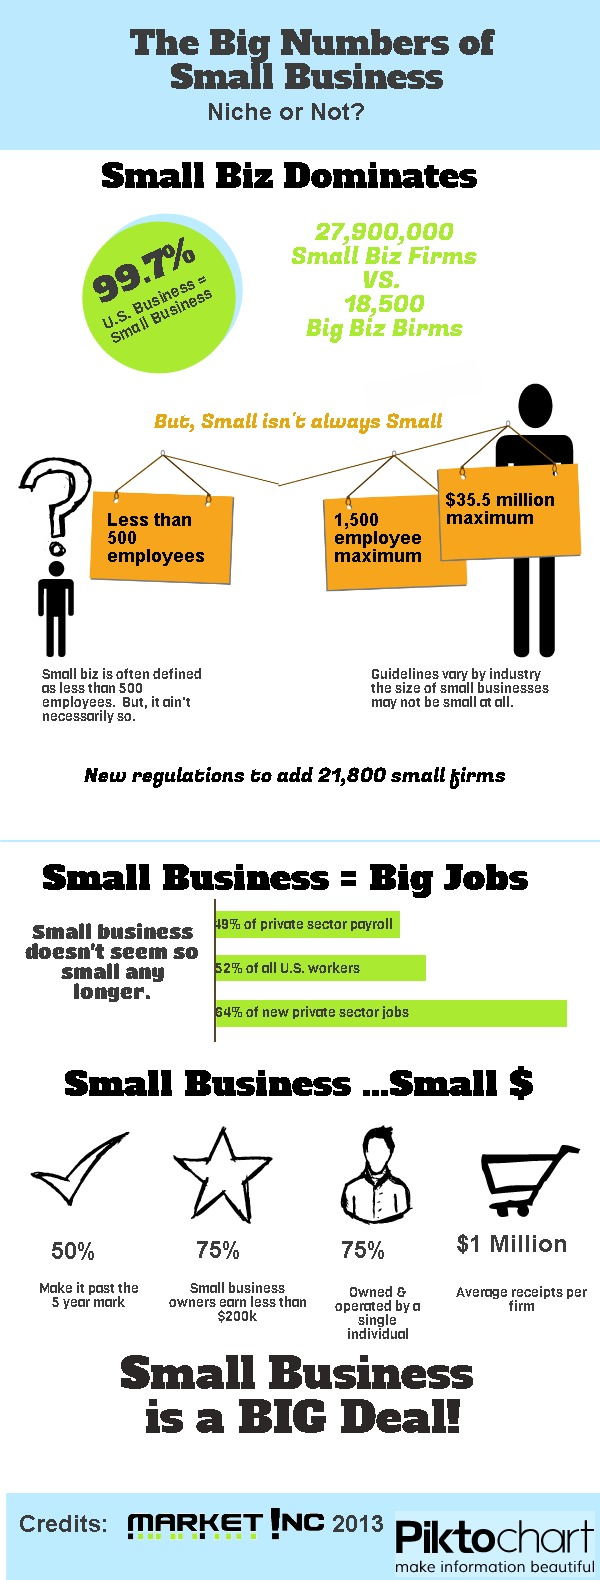 Small Business - Niche or Not